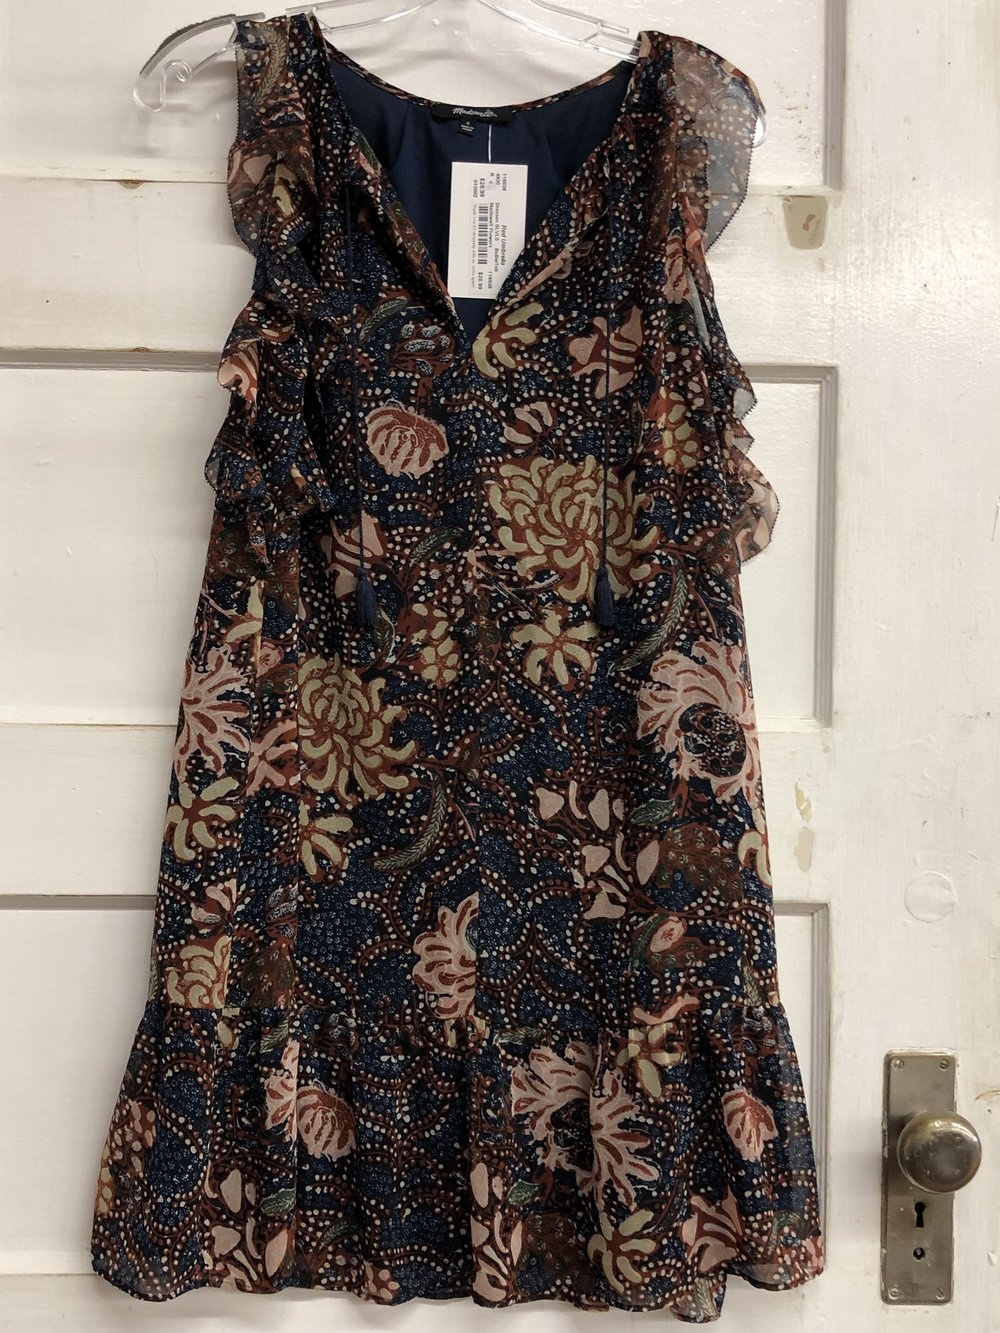 Madewell Floral - Small - $28.99